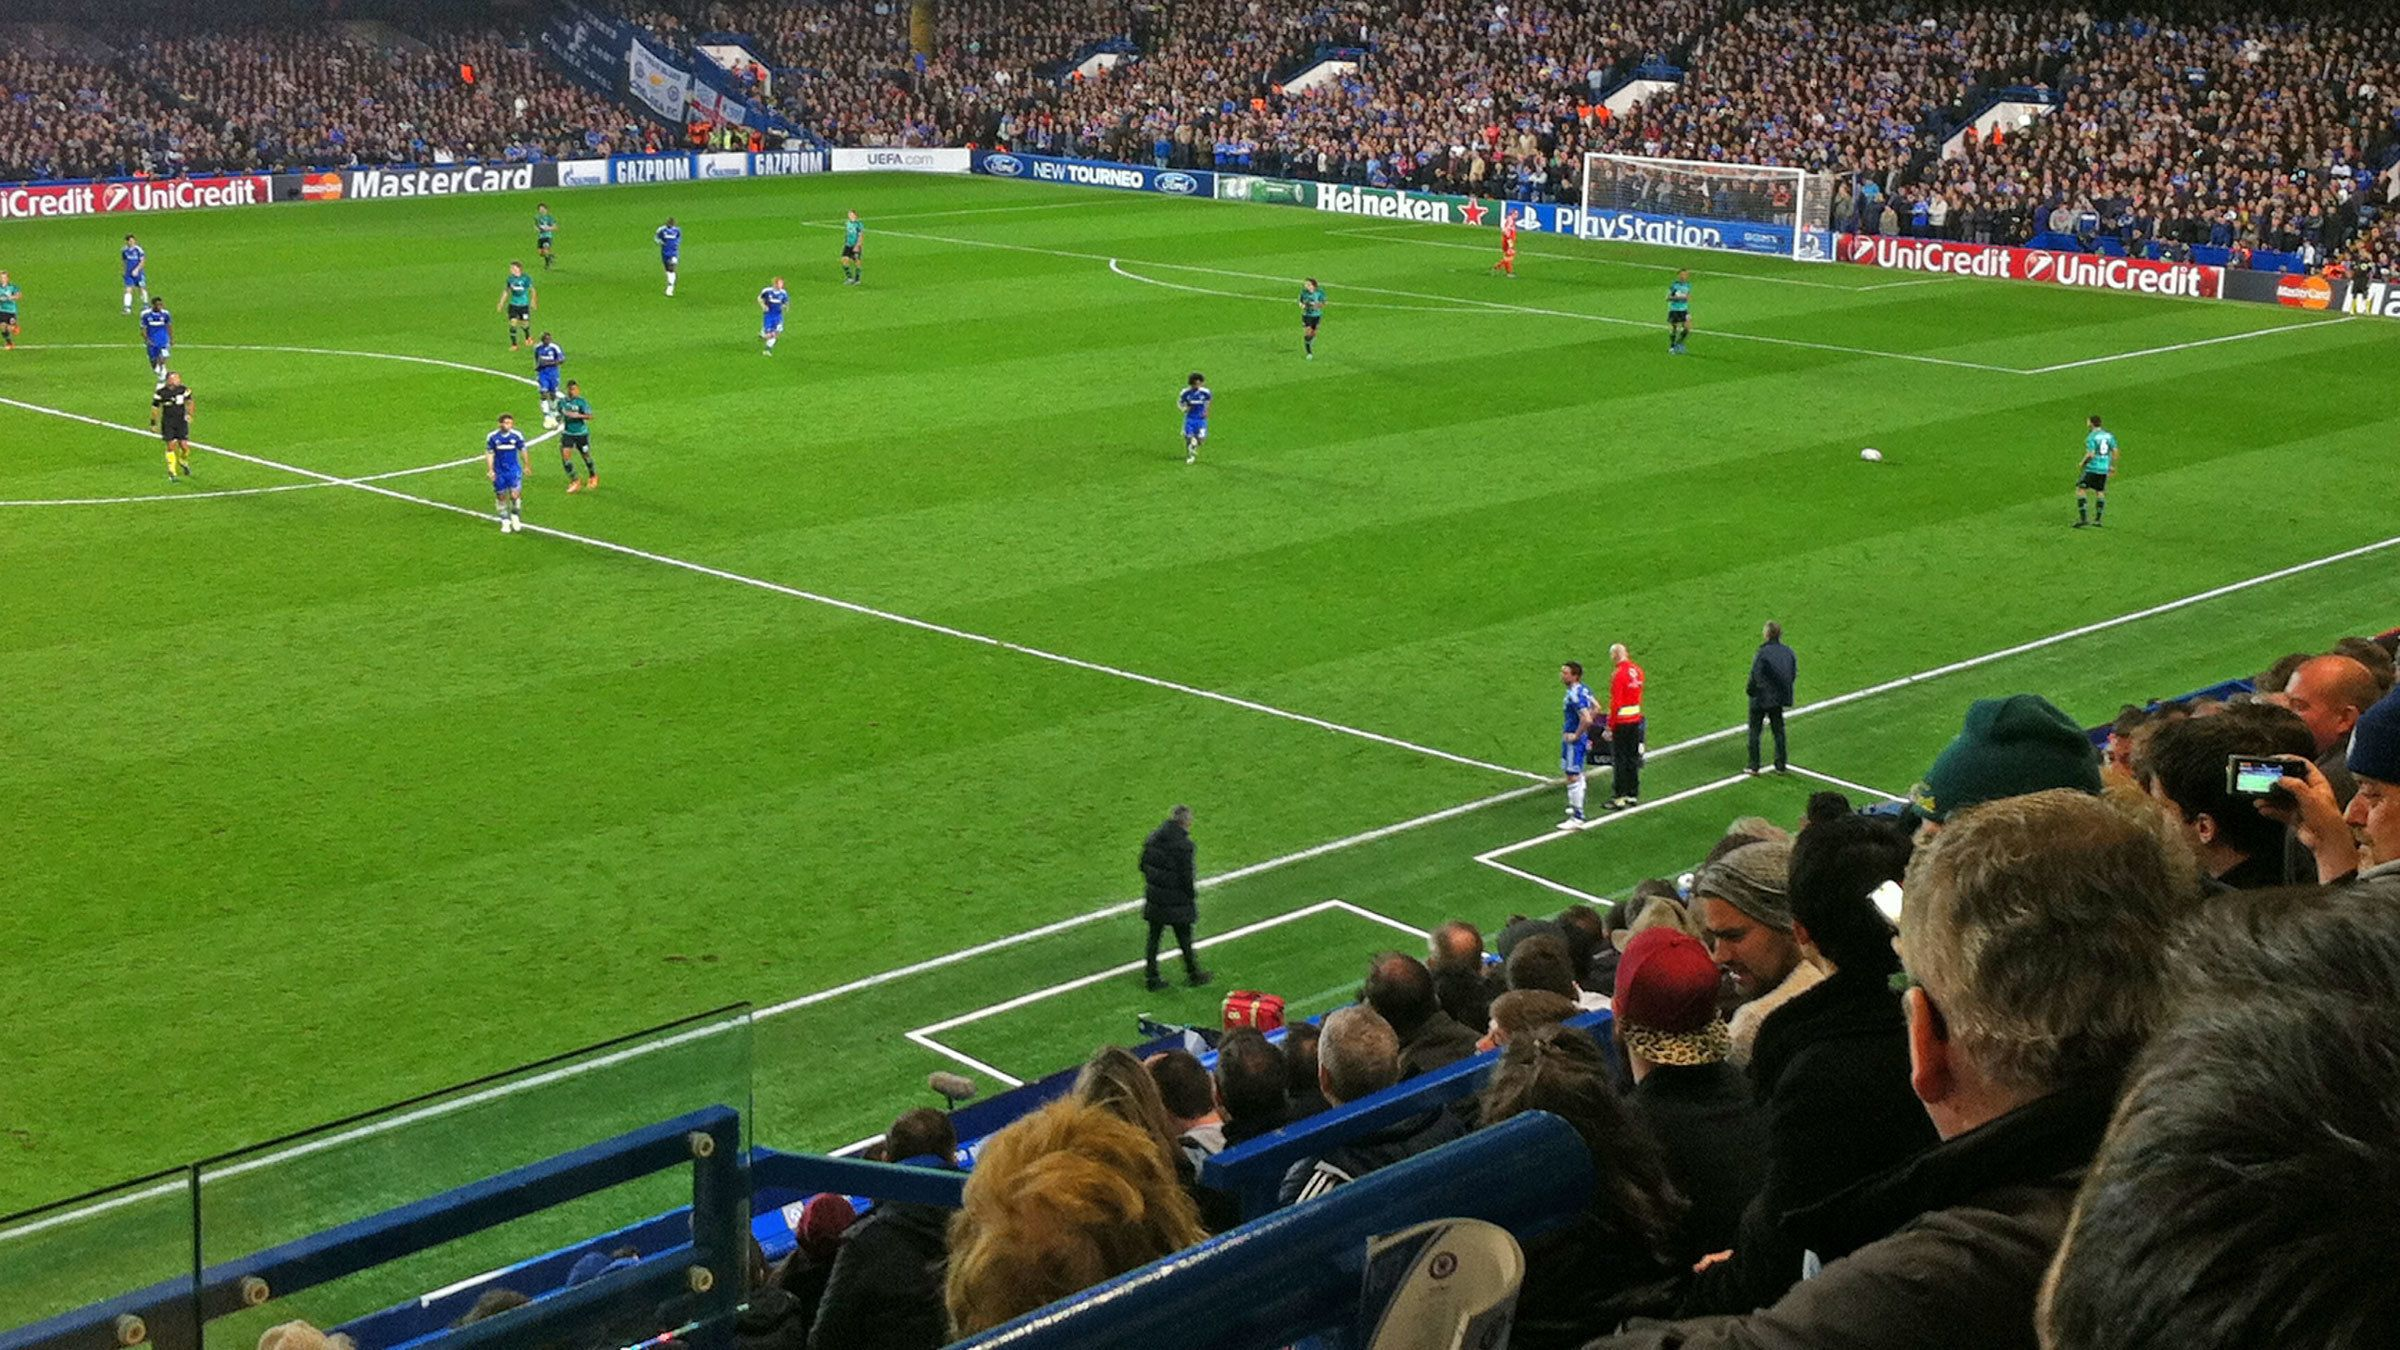 View from stands at Stamford Bridge Stadium